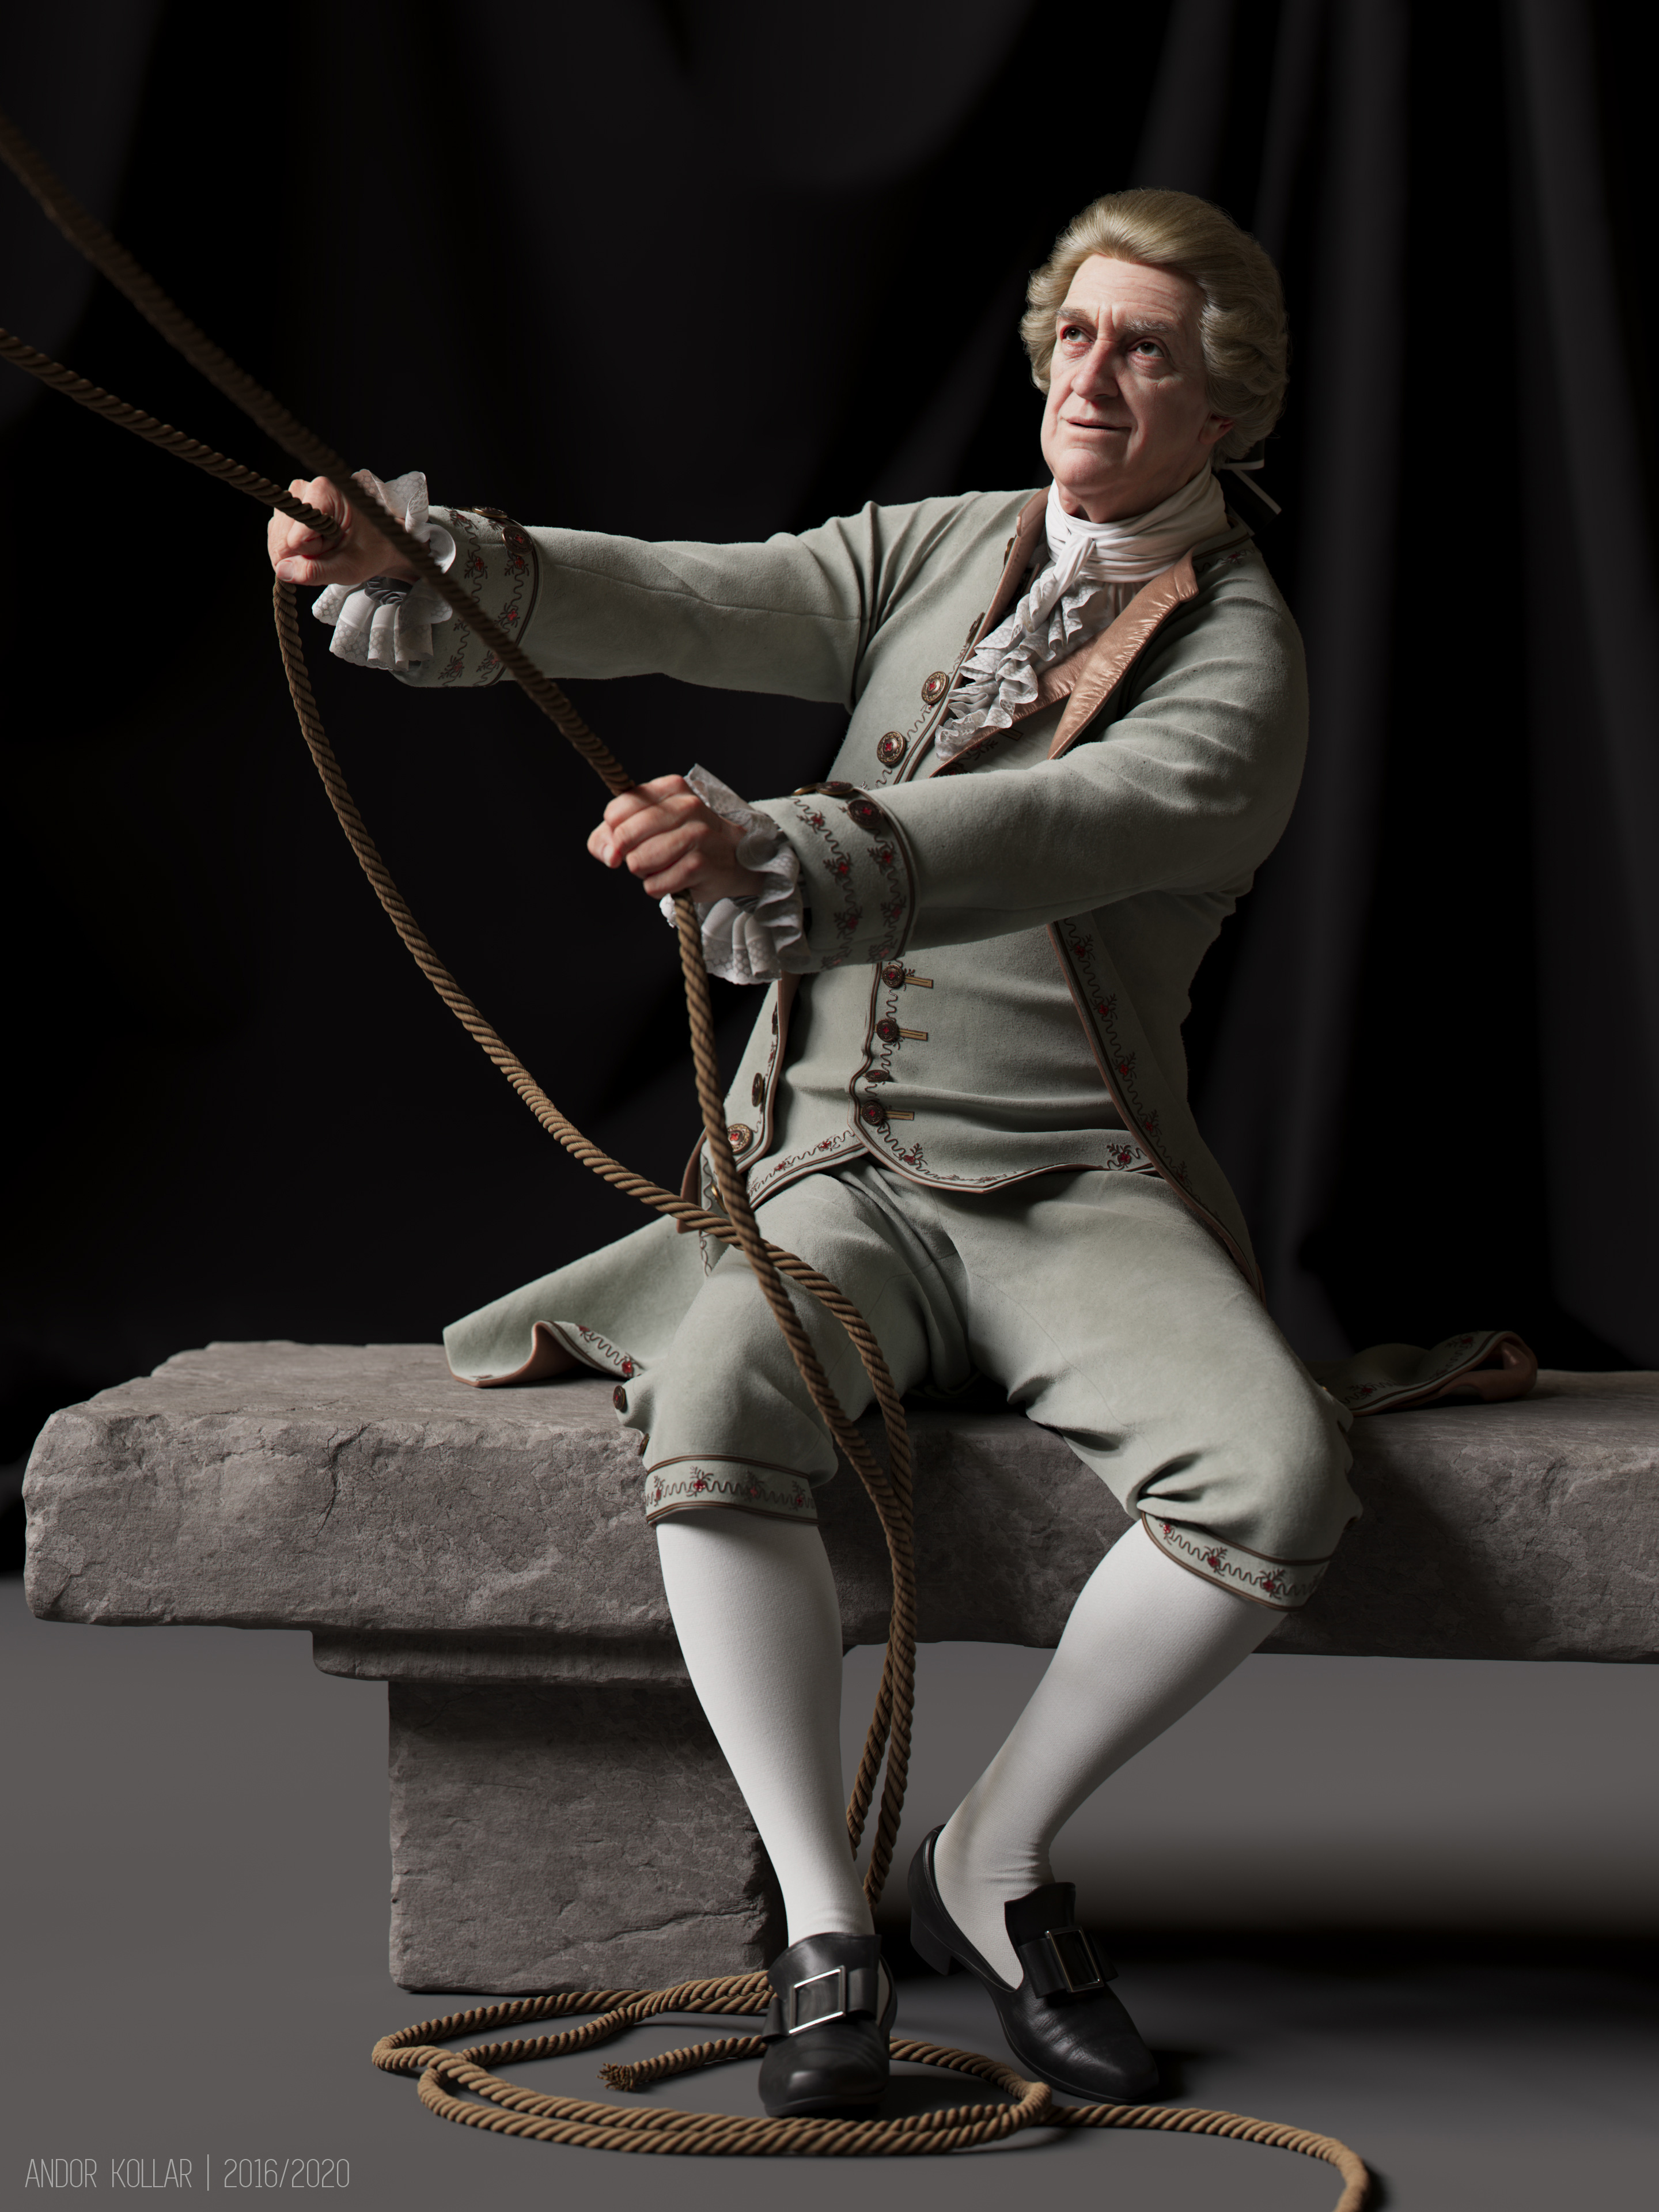 18th century 3d aristocrat character with justacorp coat and wig in Maya with Arnold renderer